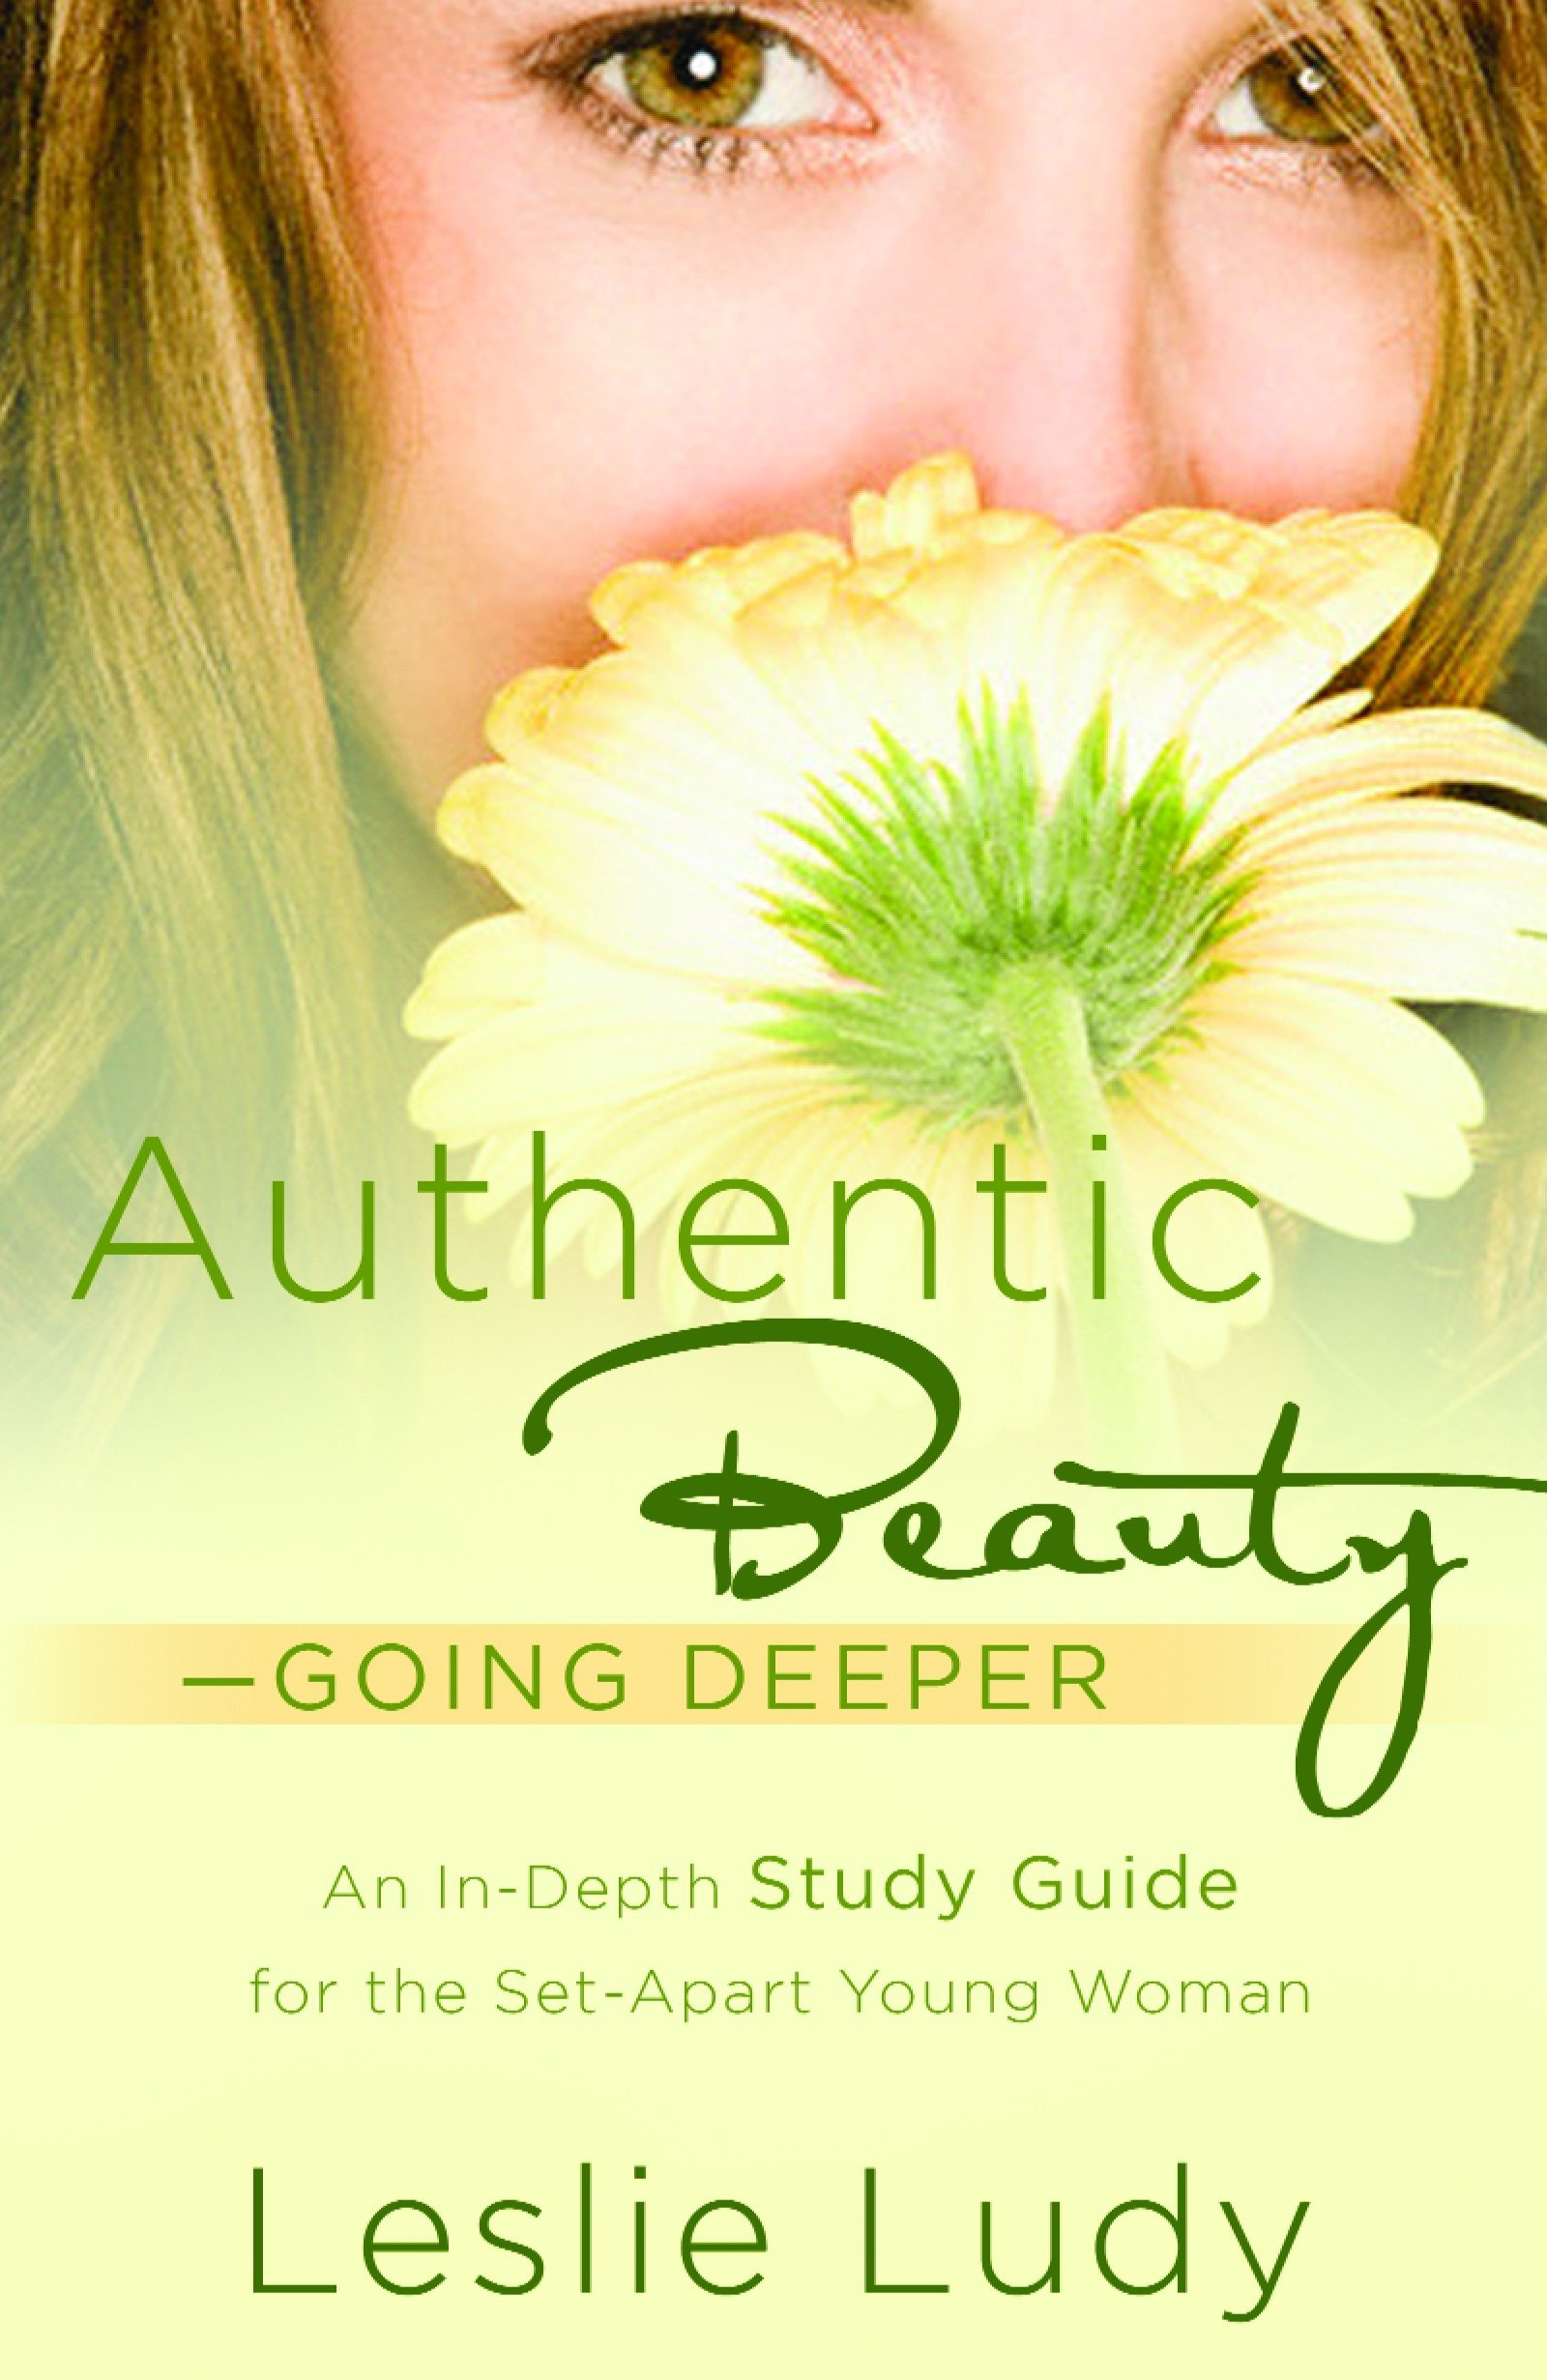 Authentic Beauty Going Deeper: A Study Guide for the Set-Apart Young Woman